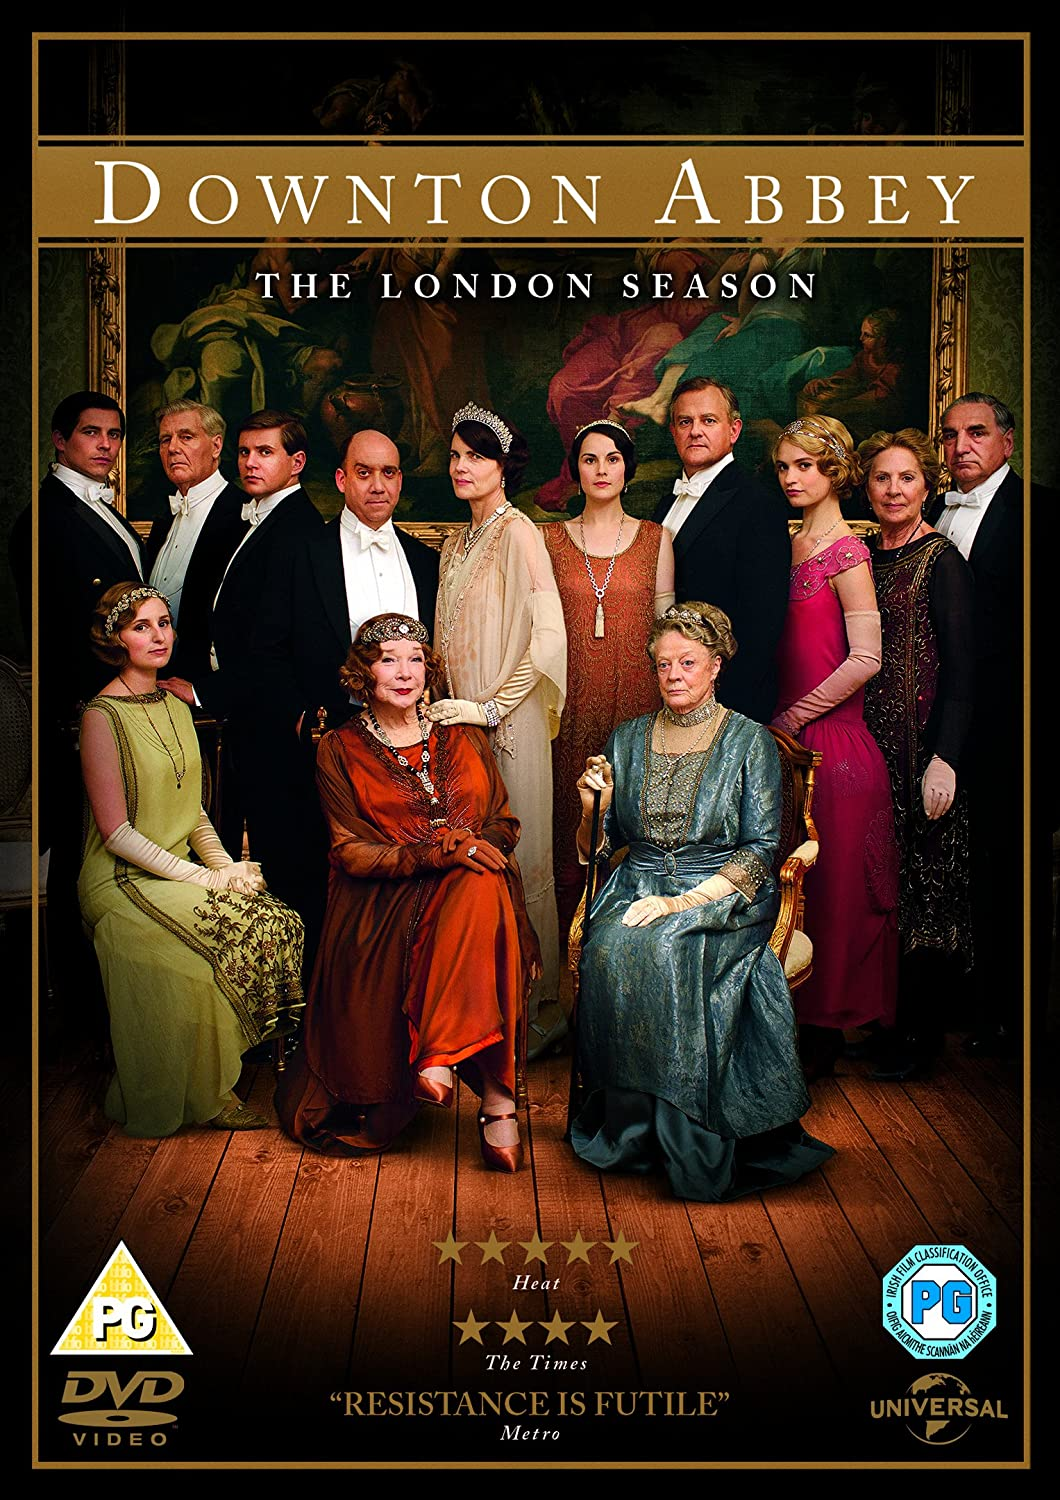 downton abbey season 2 christmas special english subtitles